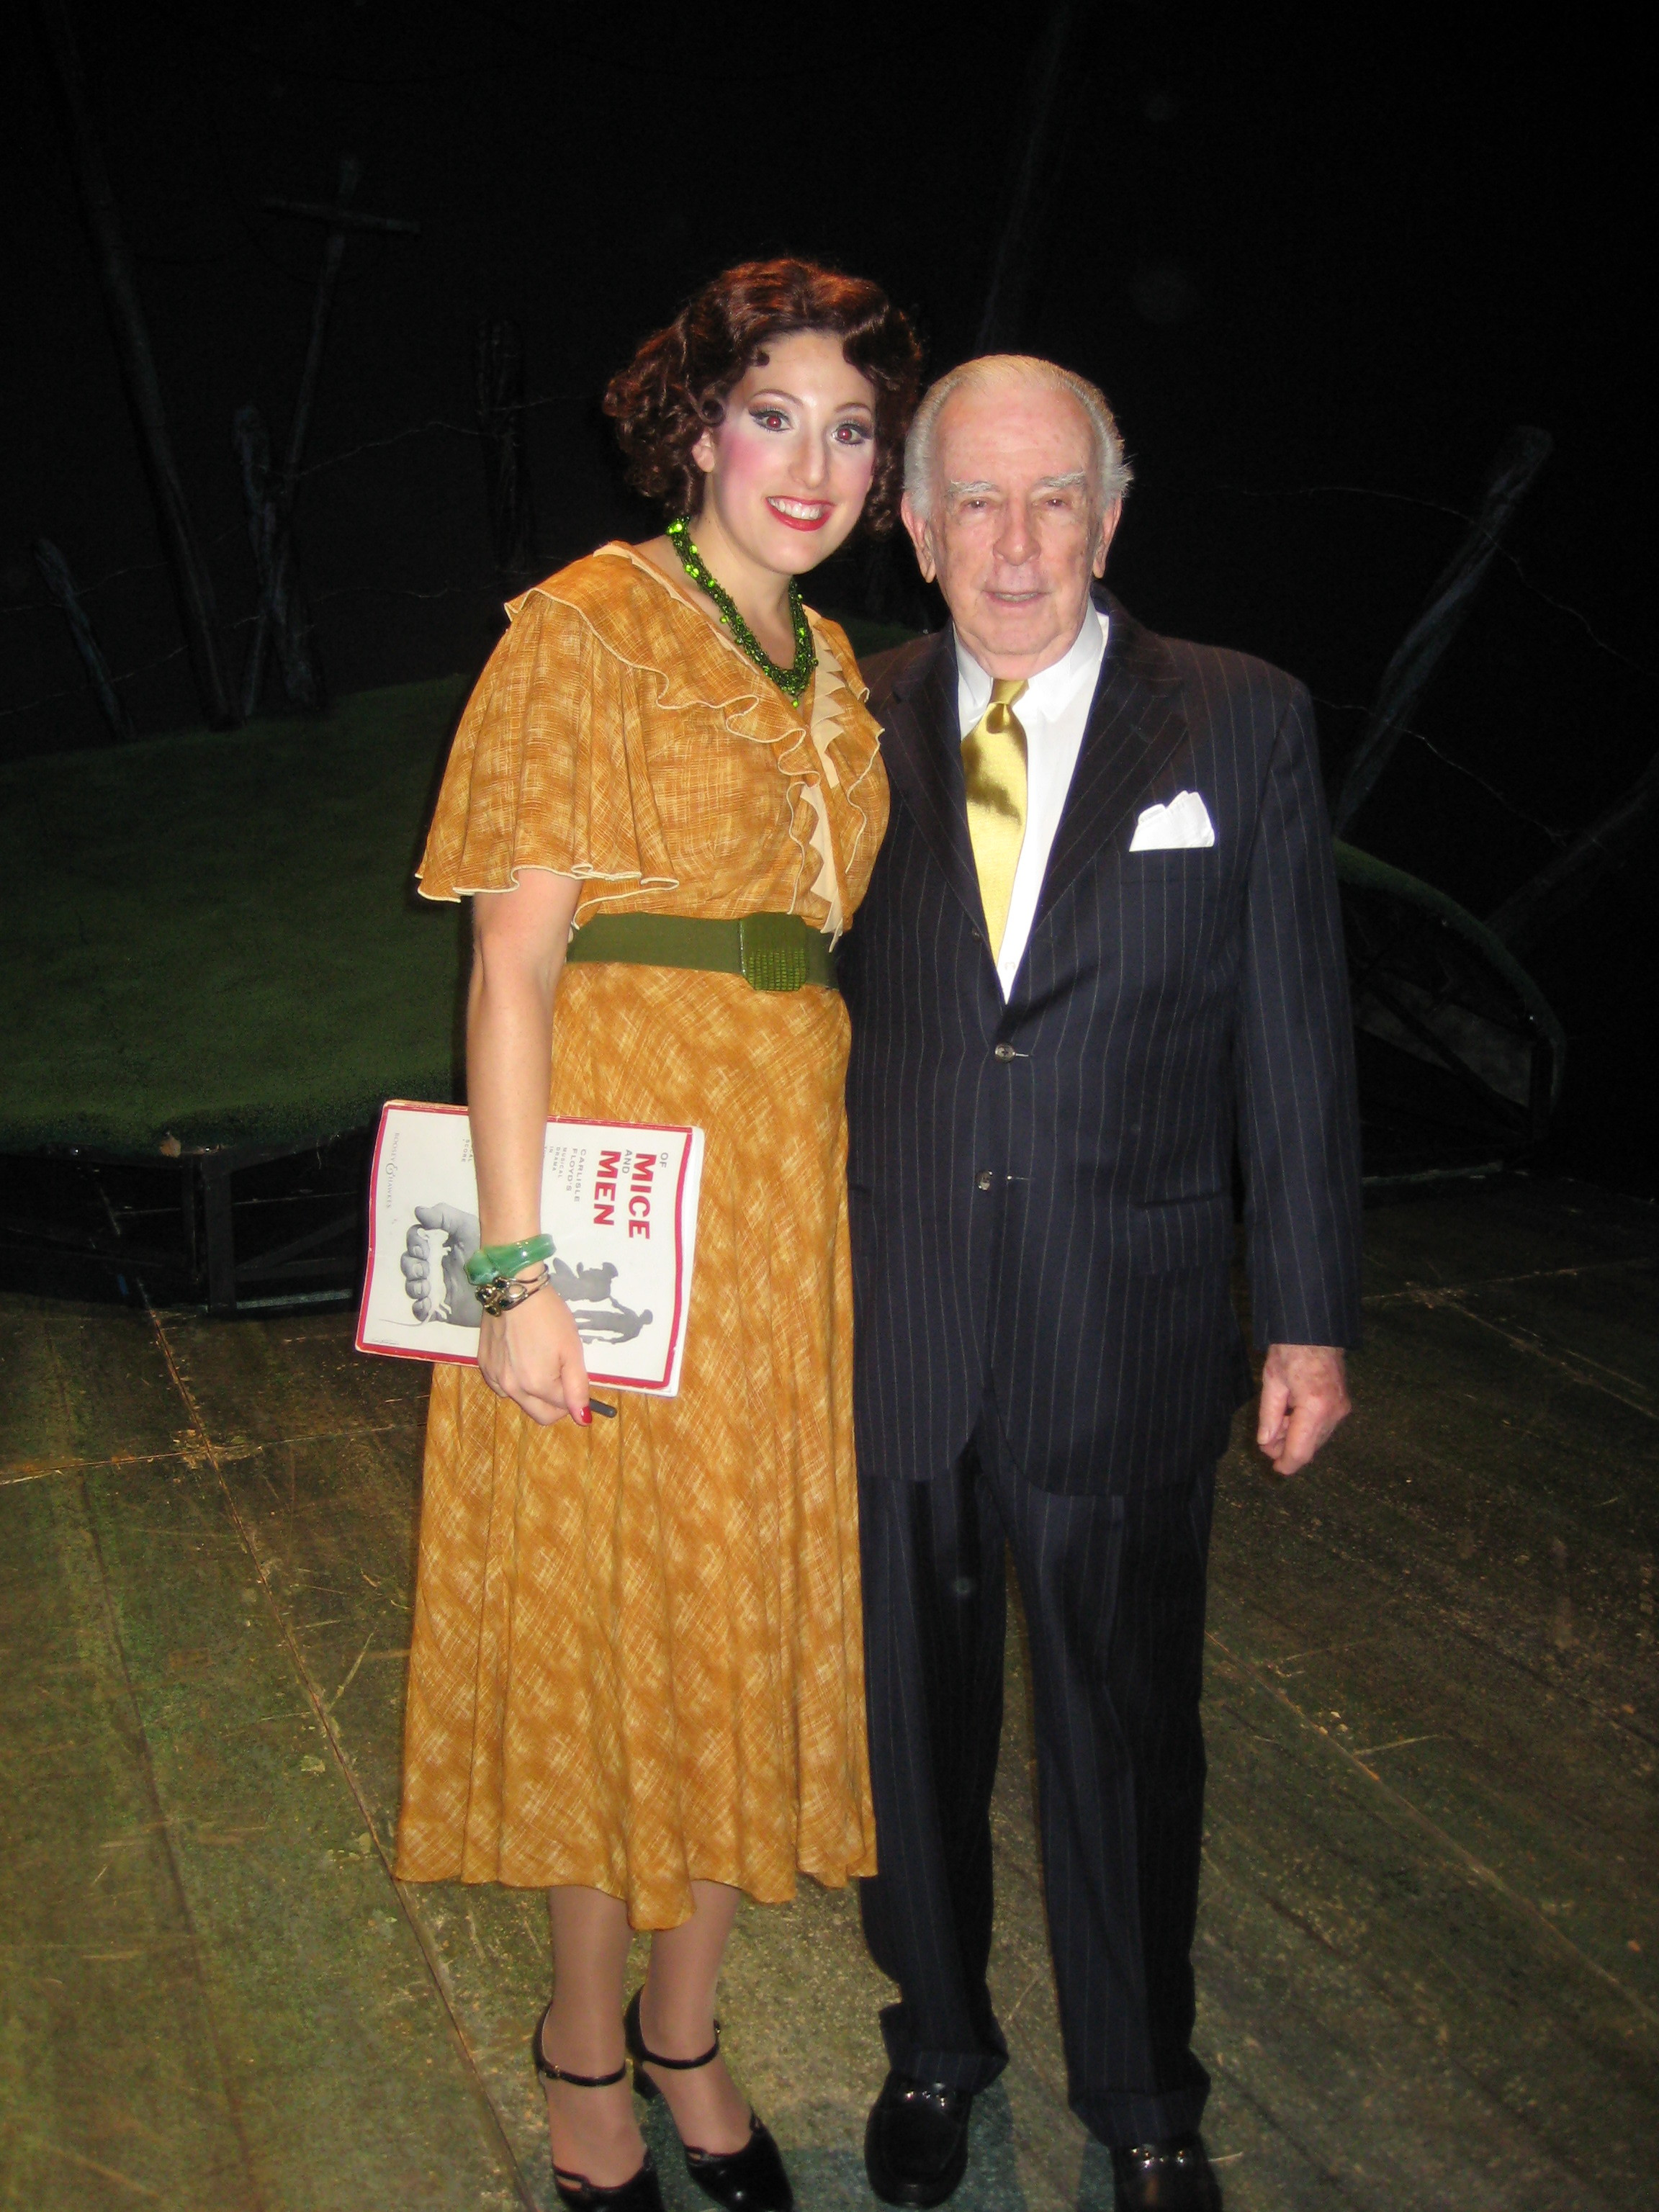 with composer Carlisle FLoyd at Kentucky Opera for 'Of mice and men'